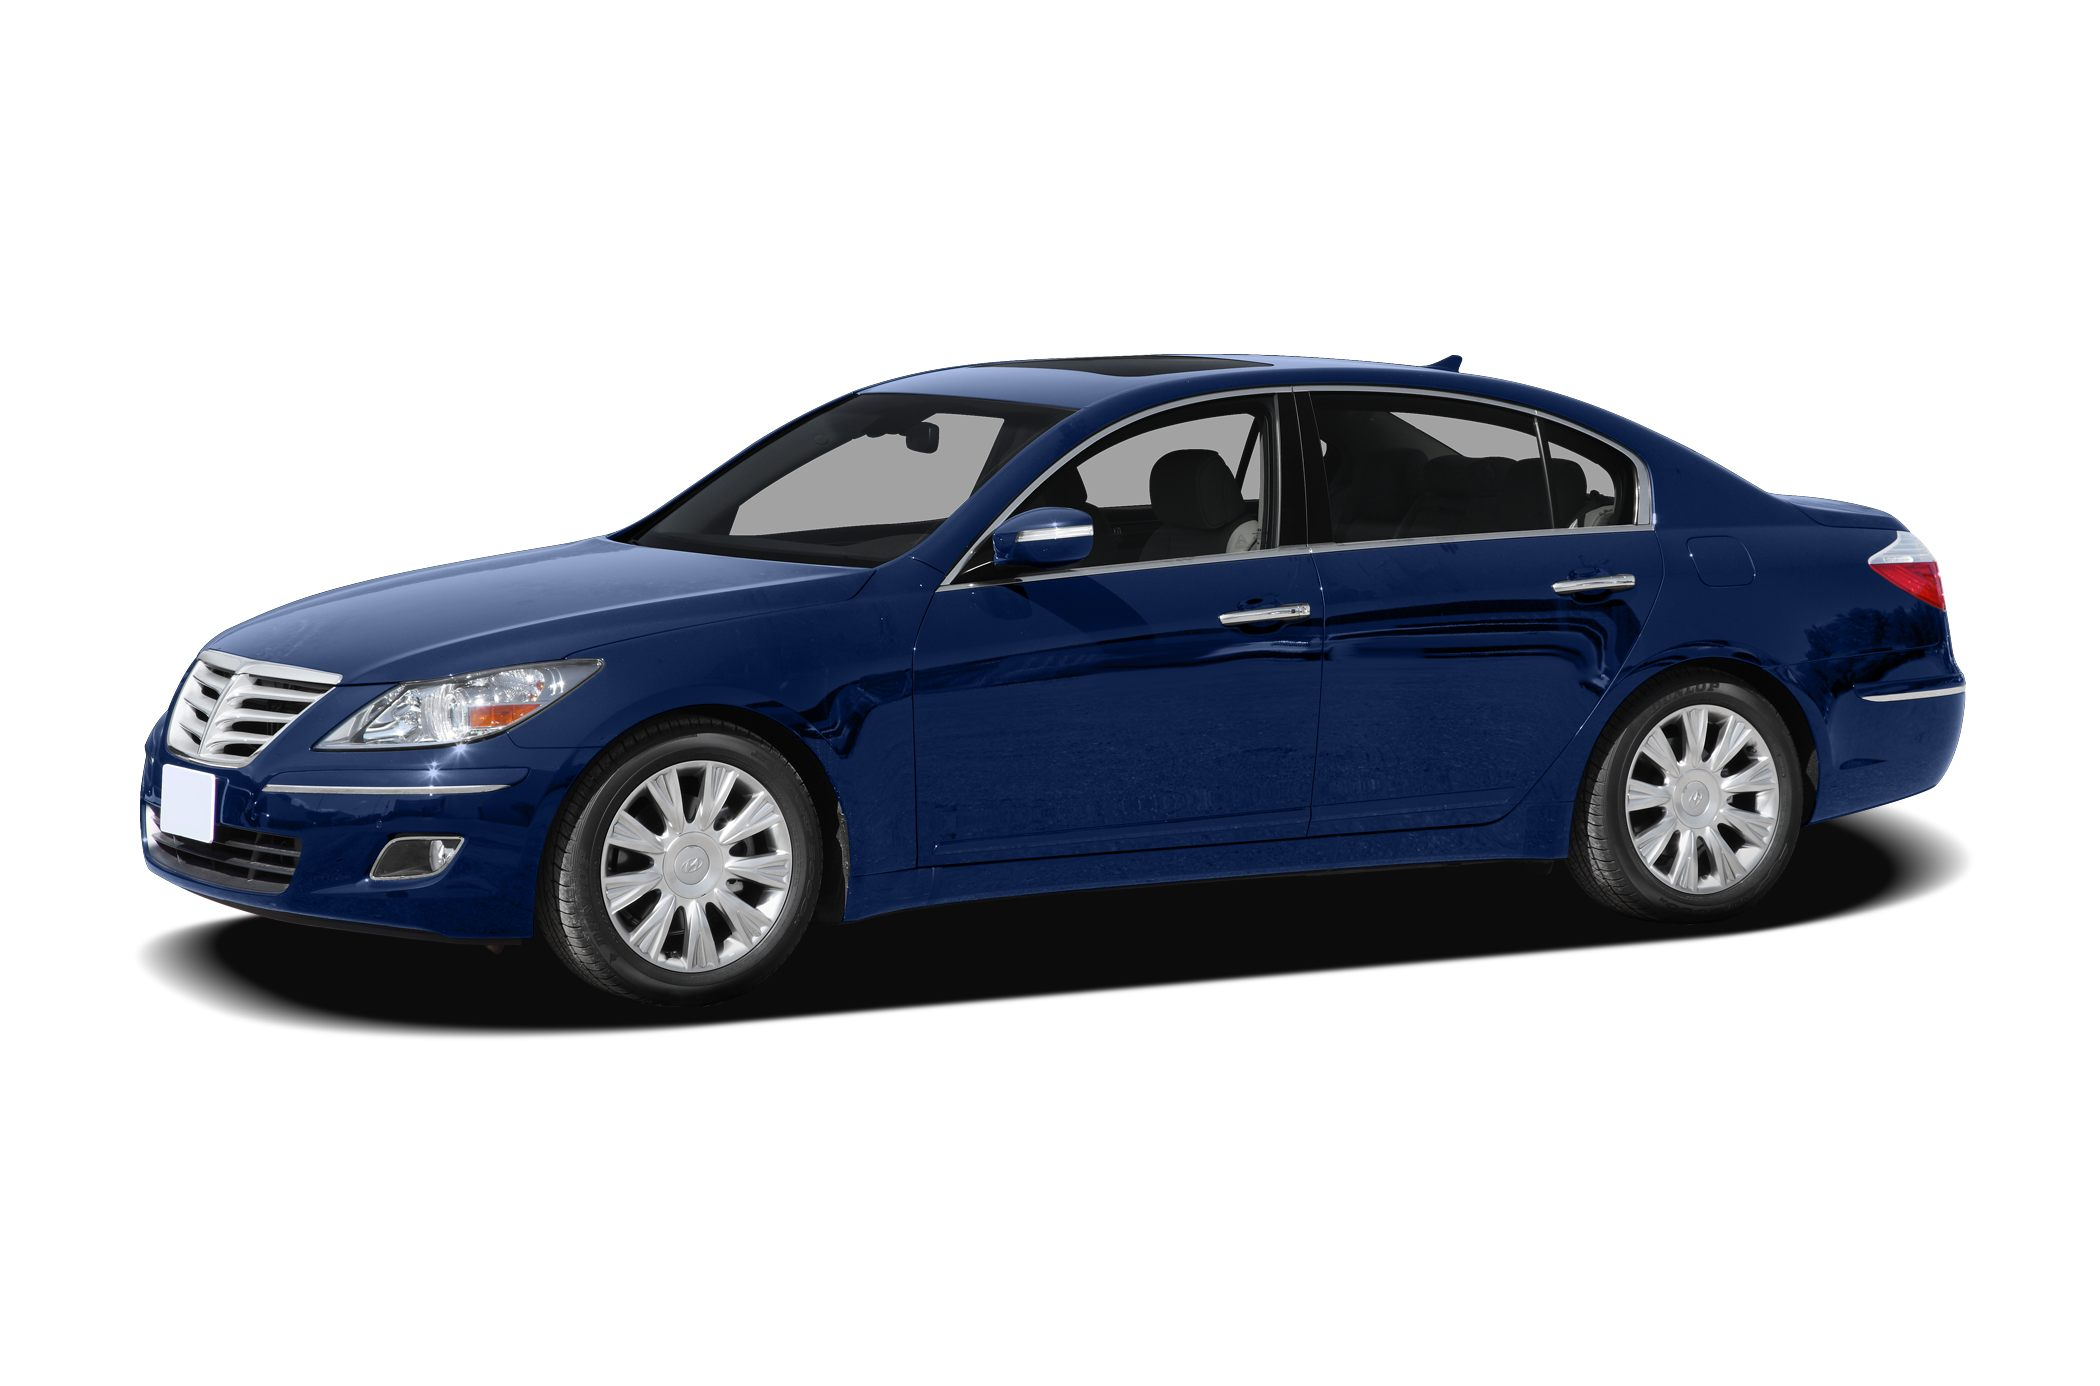 2009 Hyundai Genesis 4.6 Sedan for sale in Jacksonville for $18,990 with 45,239 miles